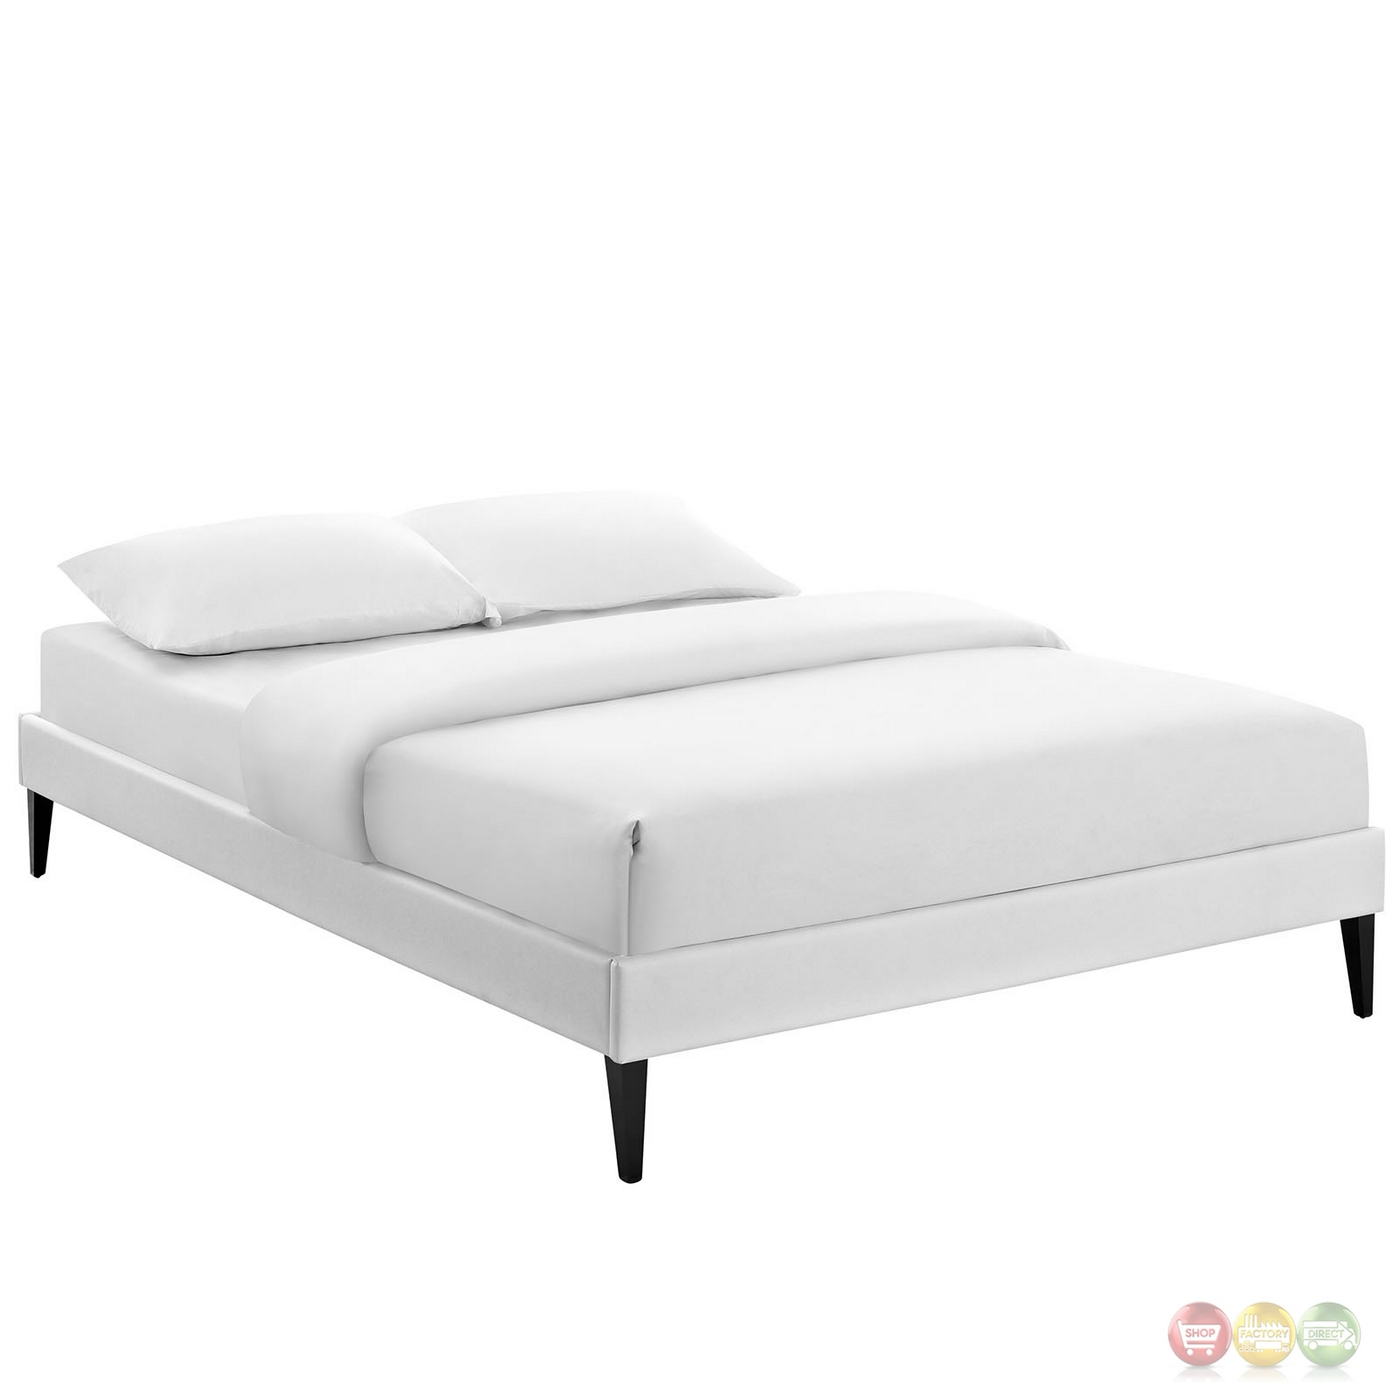 Sharon modern king vinyl platform bed frame with square legs white - How to build a modern bed frame ...